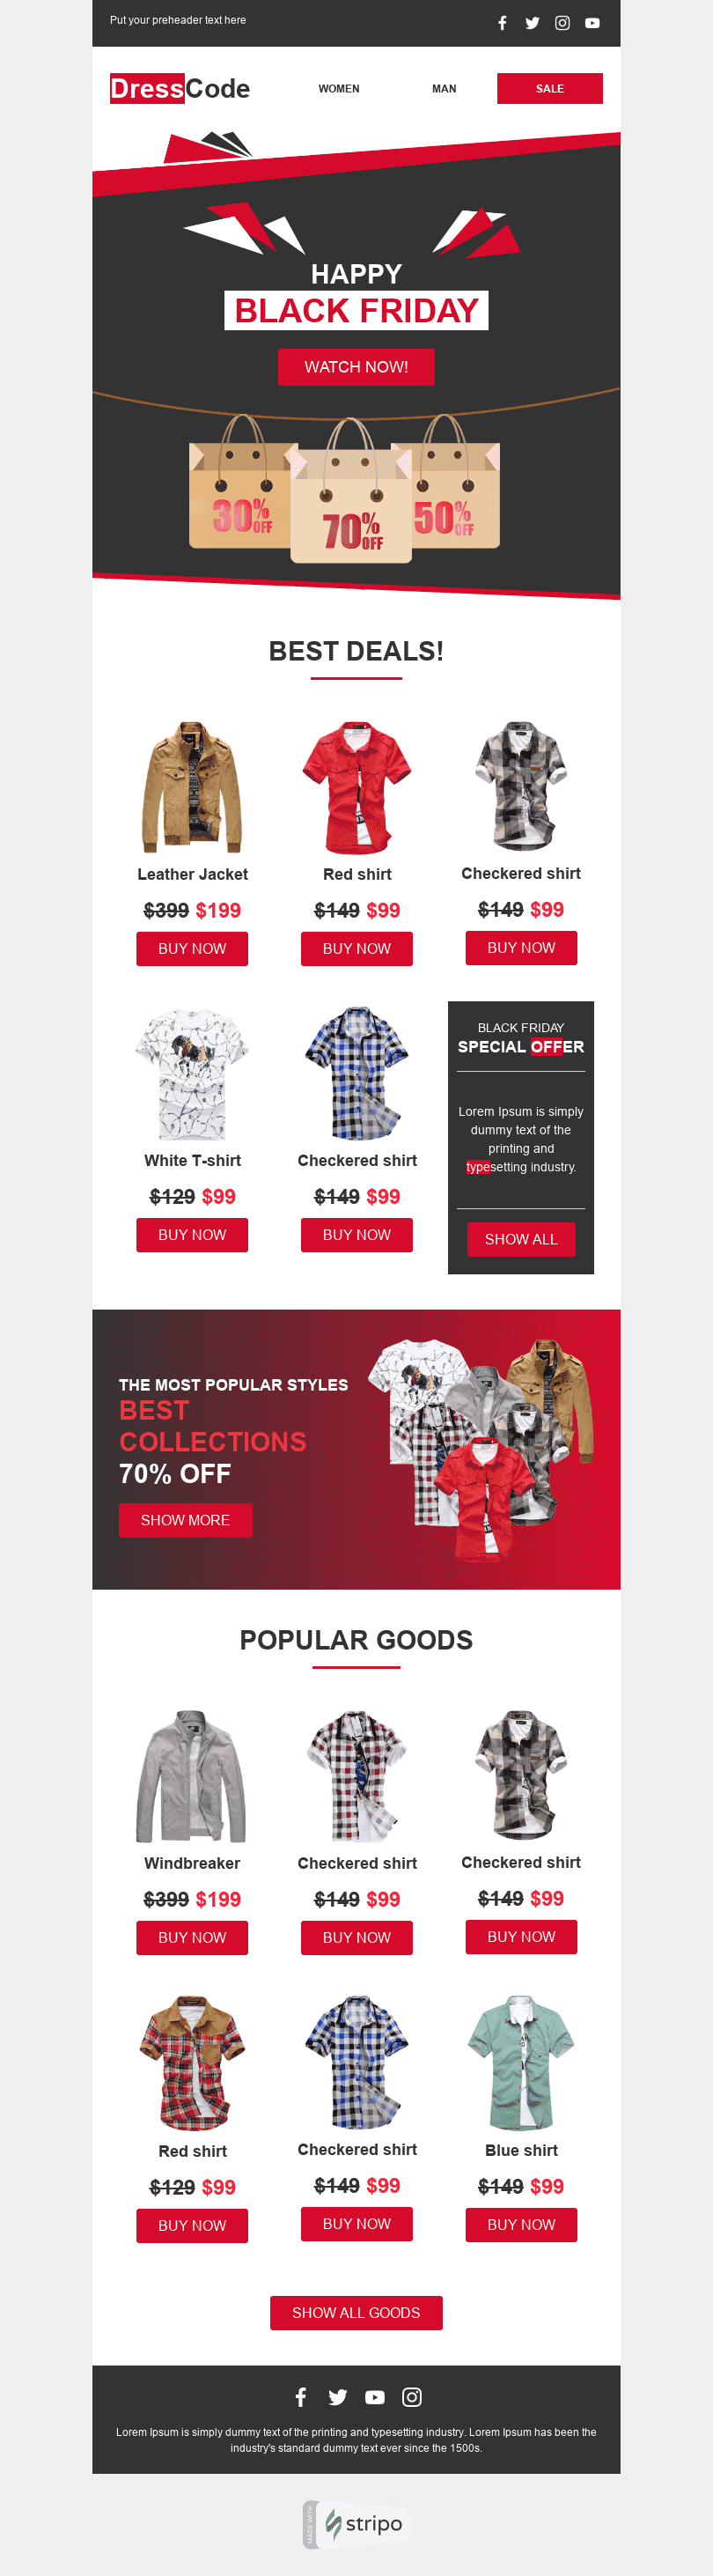 Promo Email Template «Dress Code» for Fashion industry desktop view